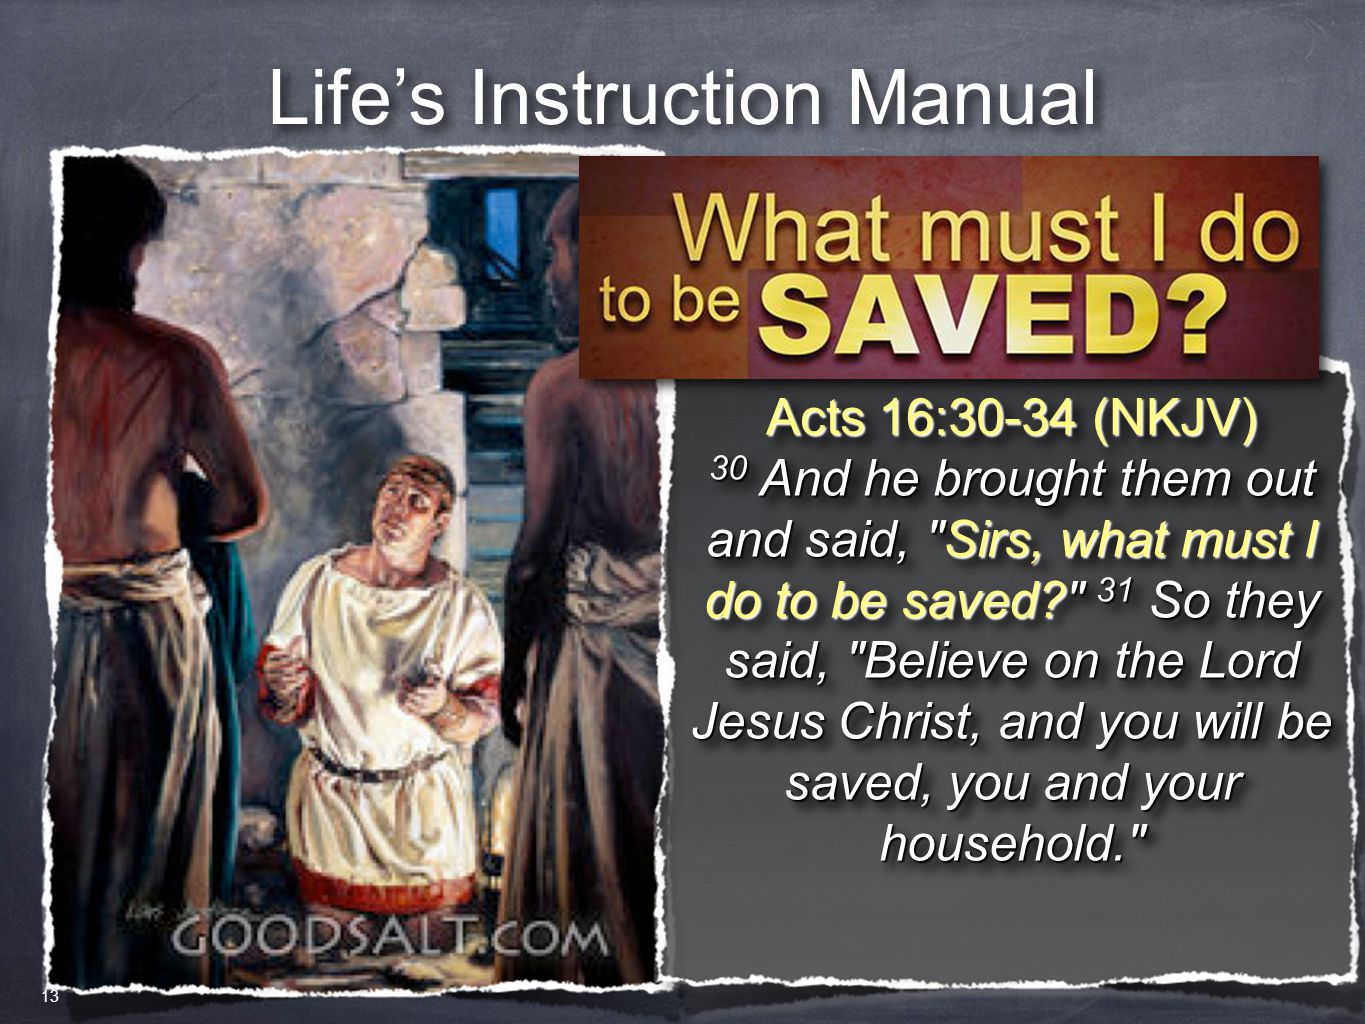 Life's Instruction Manual Acts 16:30-34 (NKJV) 30 And he brought them out and said,